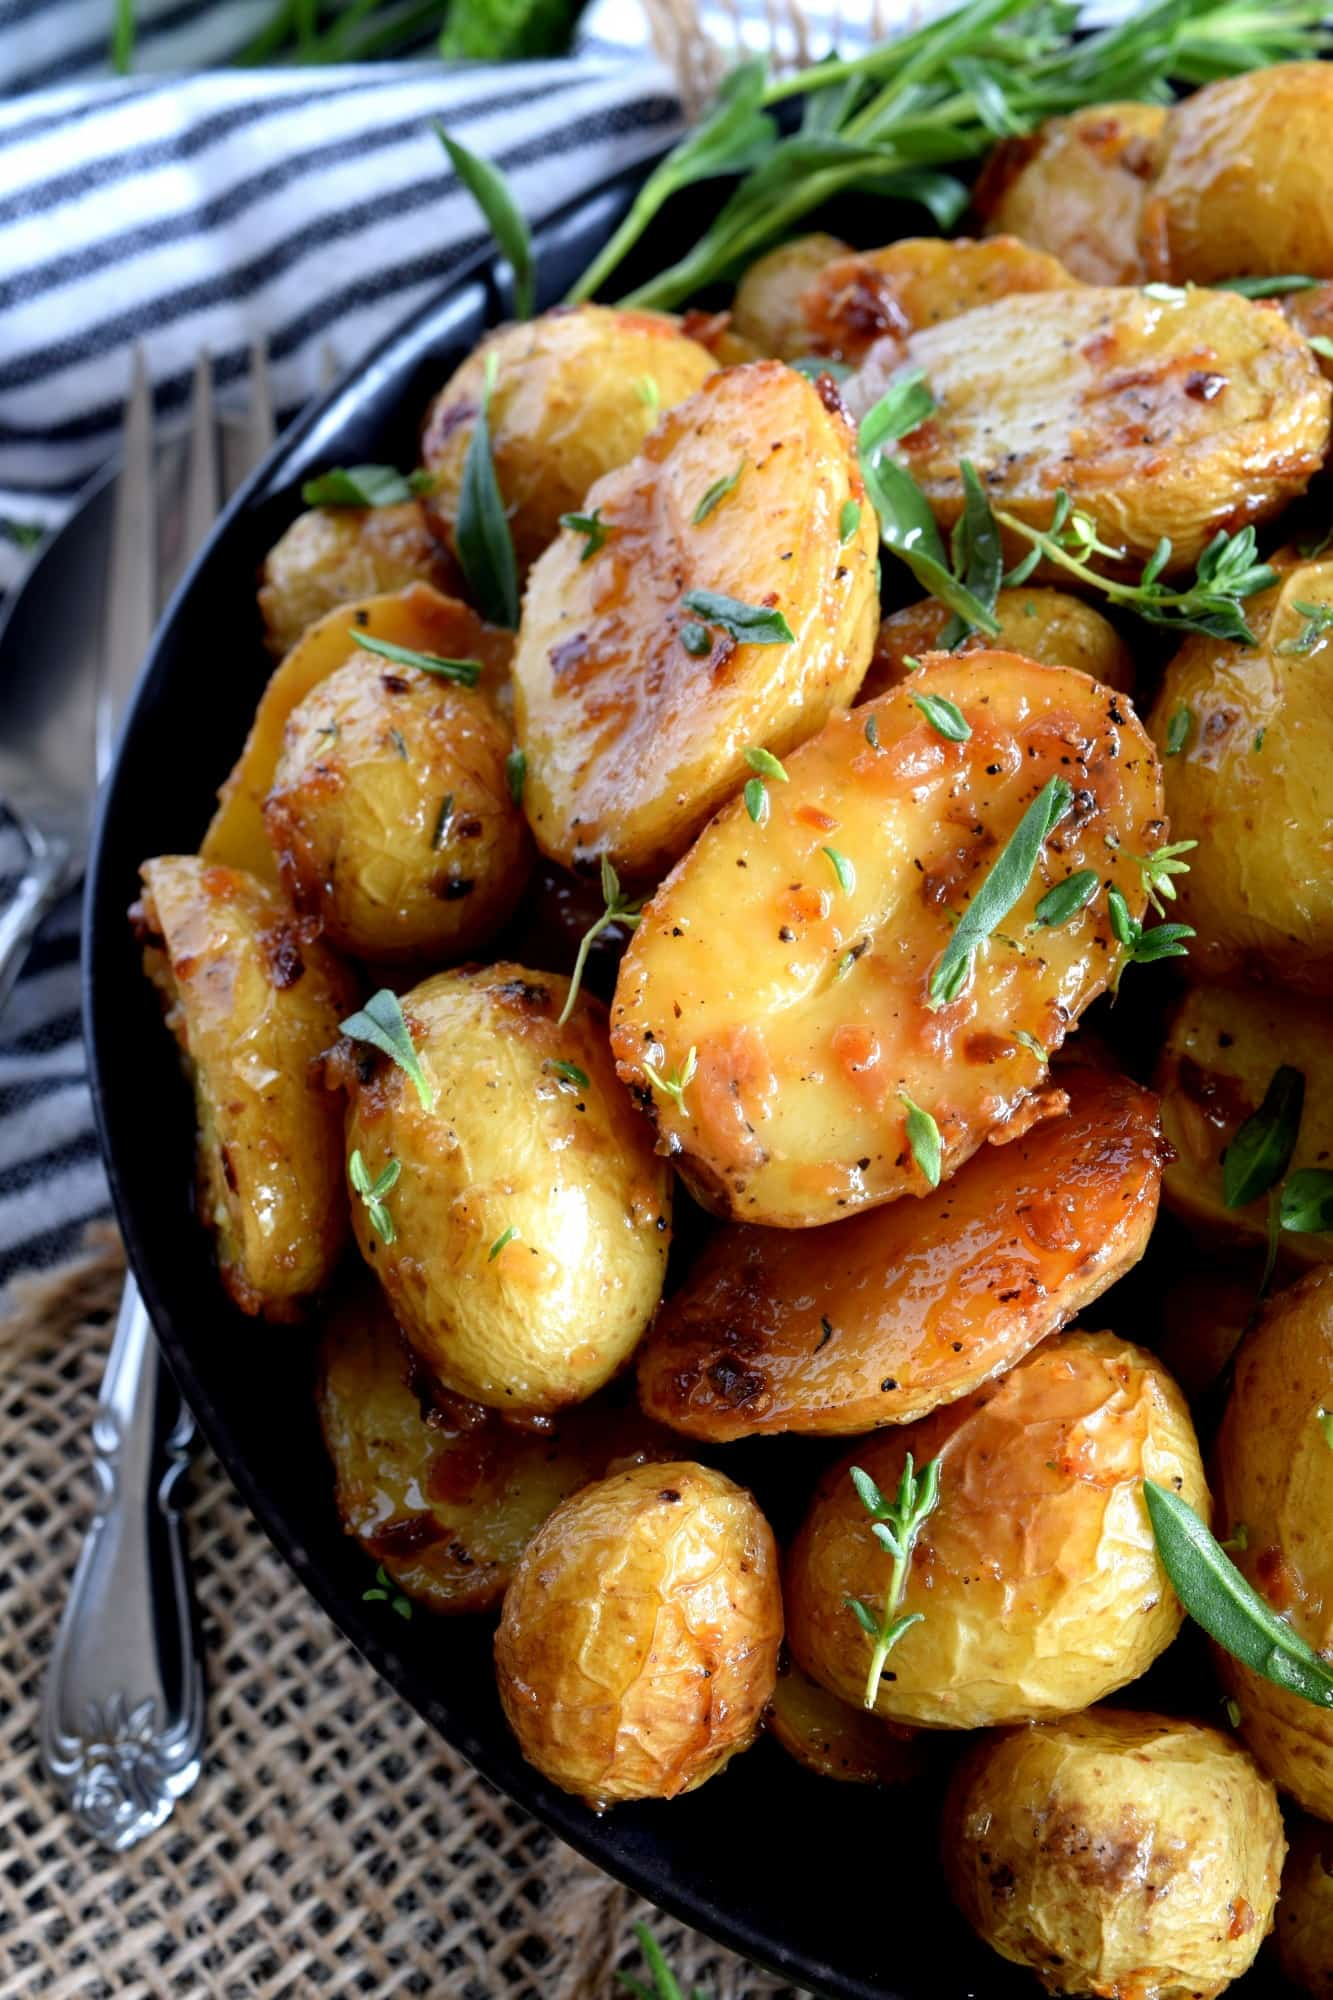 Image for recipe: Roasted Potatoes with Herbs and Crunchy Onions